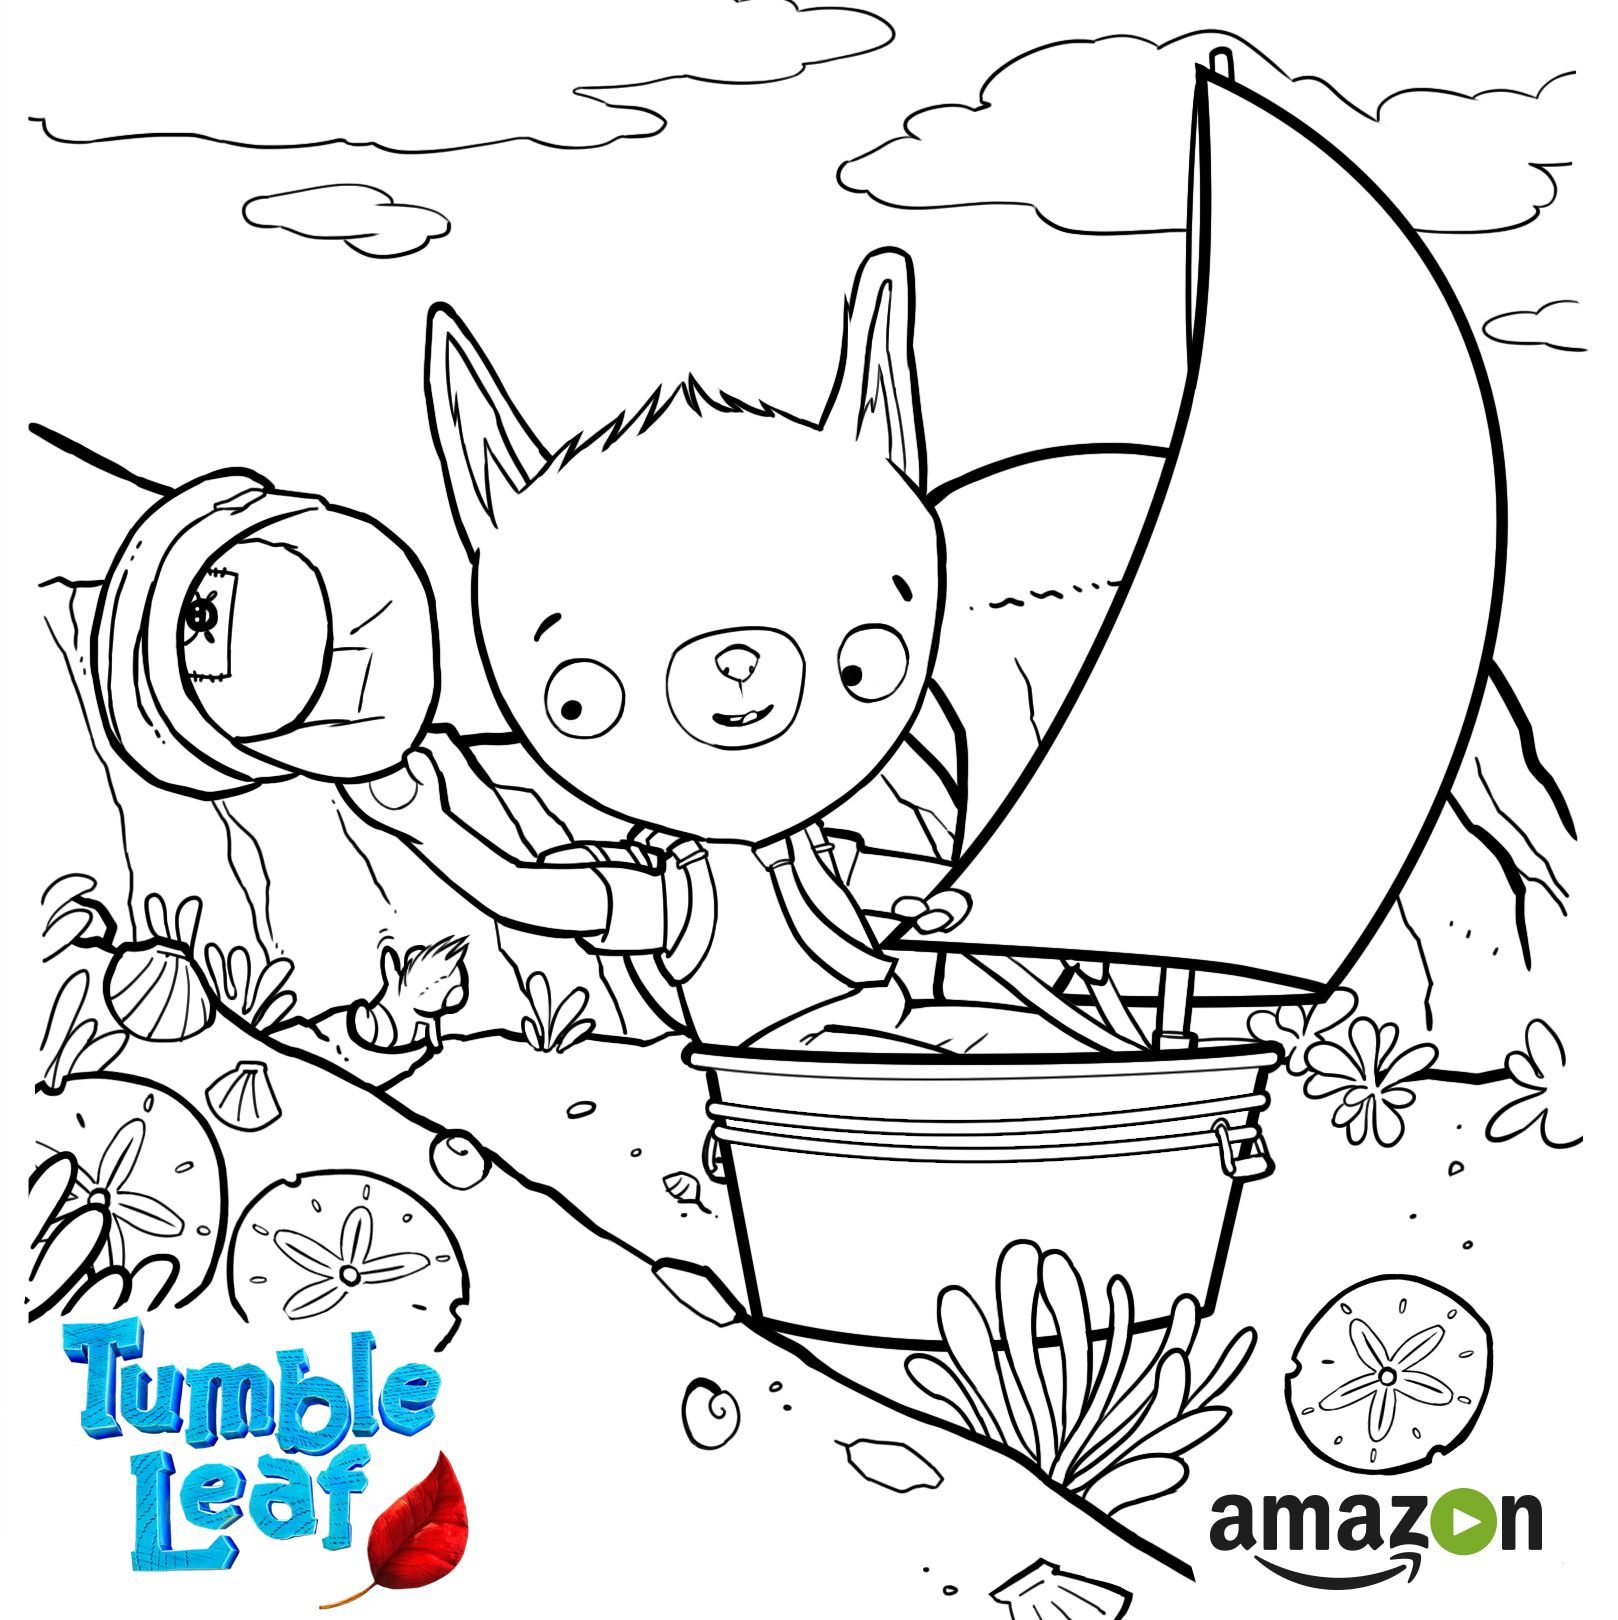 tumble leaf coloring pages New season of Tumble Leaf on Amazon #ad Download coloring page  tumble leaf coloring pages